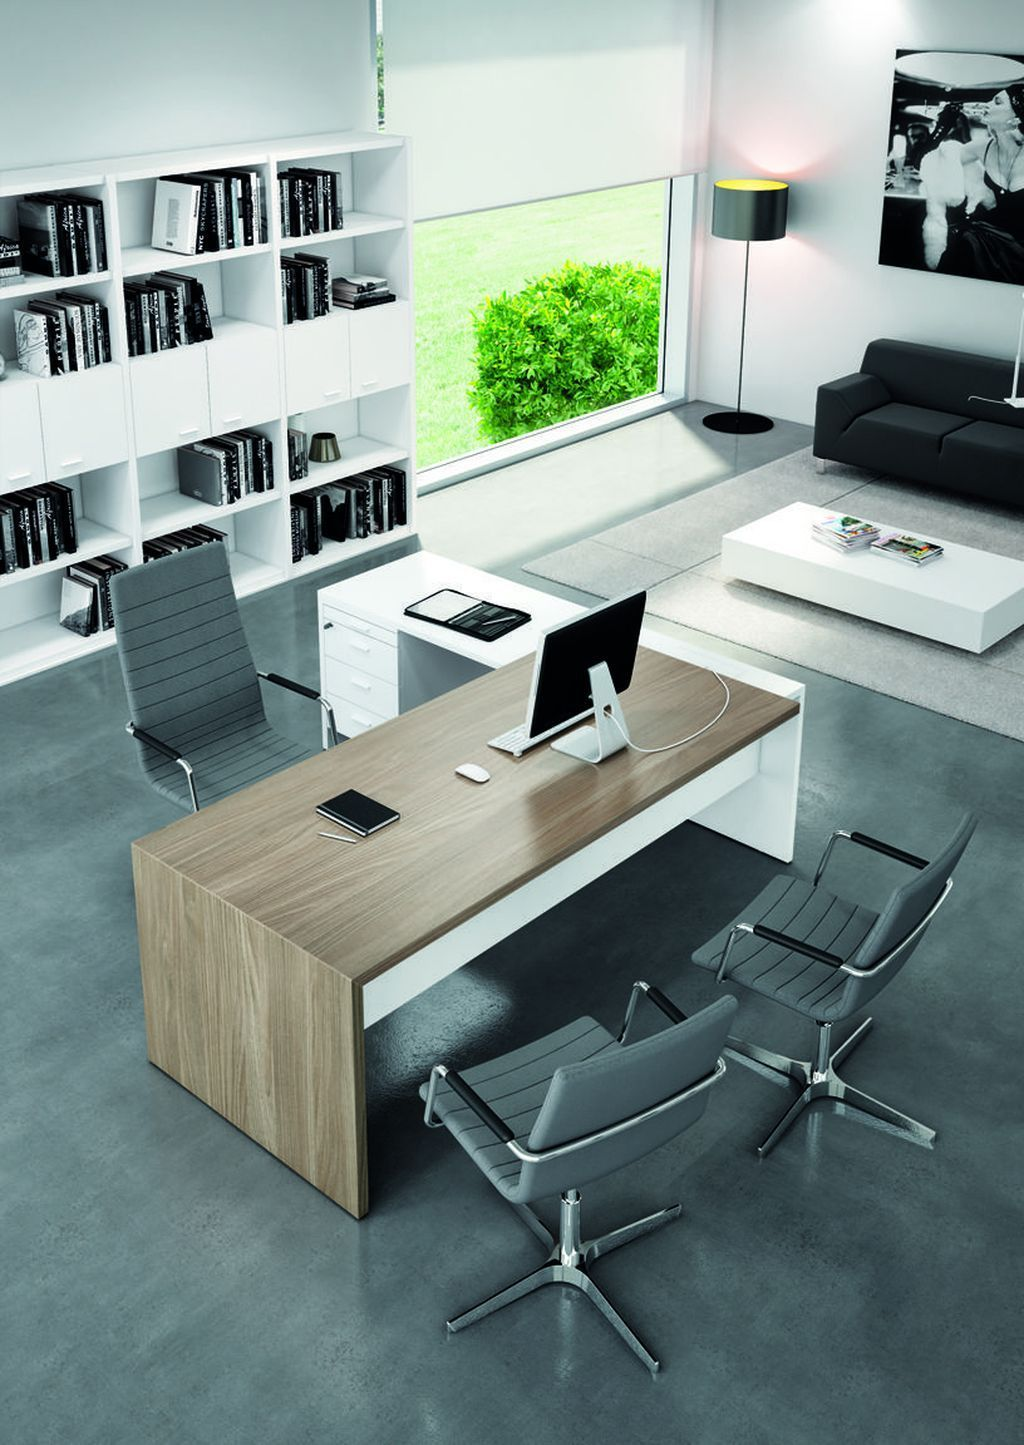 Top 30 Stunning Home Office Layout Homeoffice365 Homeofficewalmart Homeofficedecor Homeoffic Office Furniture Modern Office Desk Designs Modern Office Design